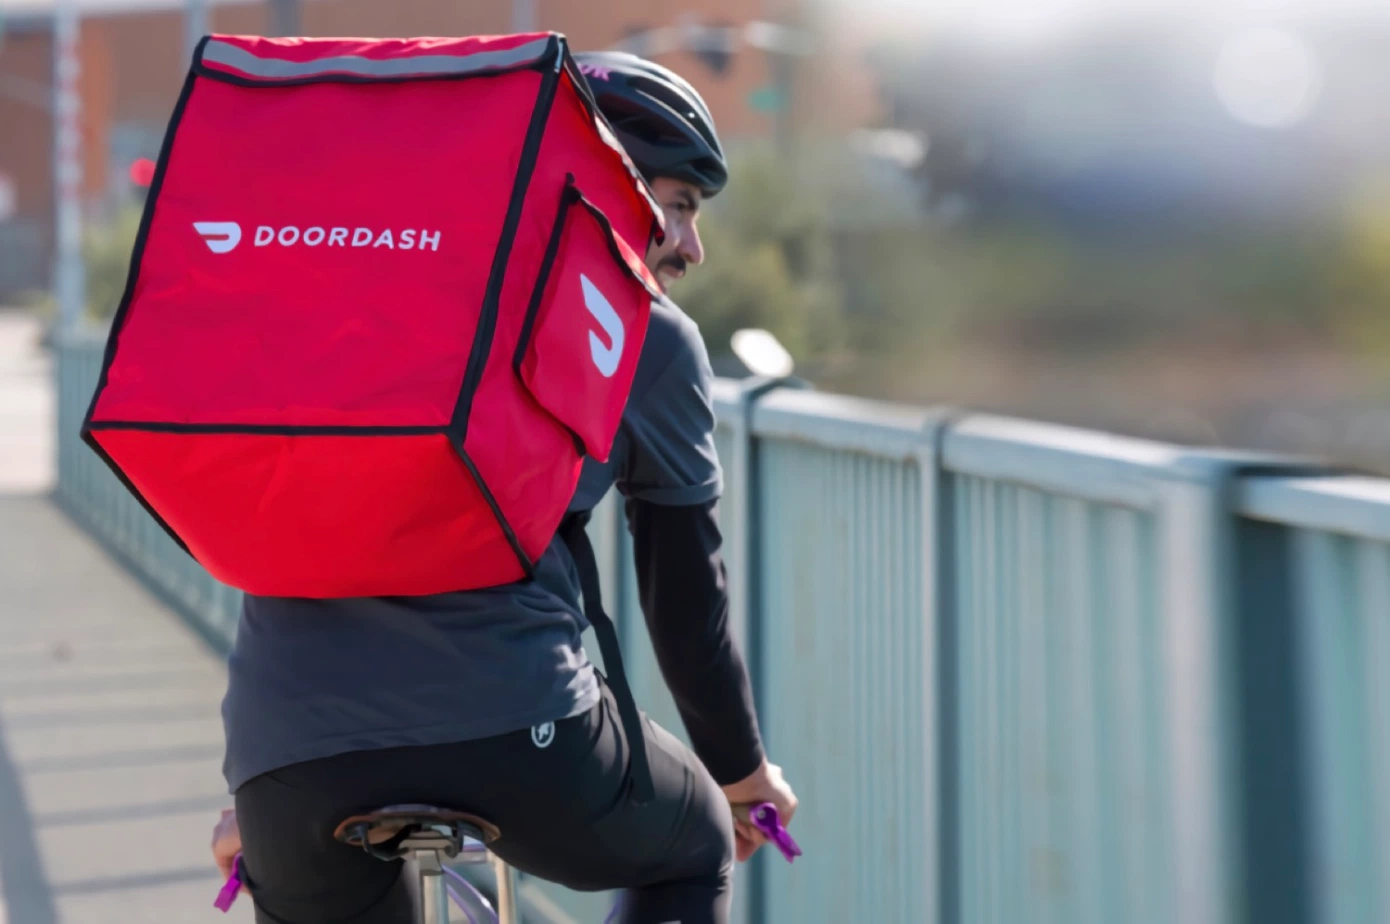 DoorDash expands with on-demand grocery delivery